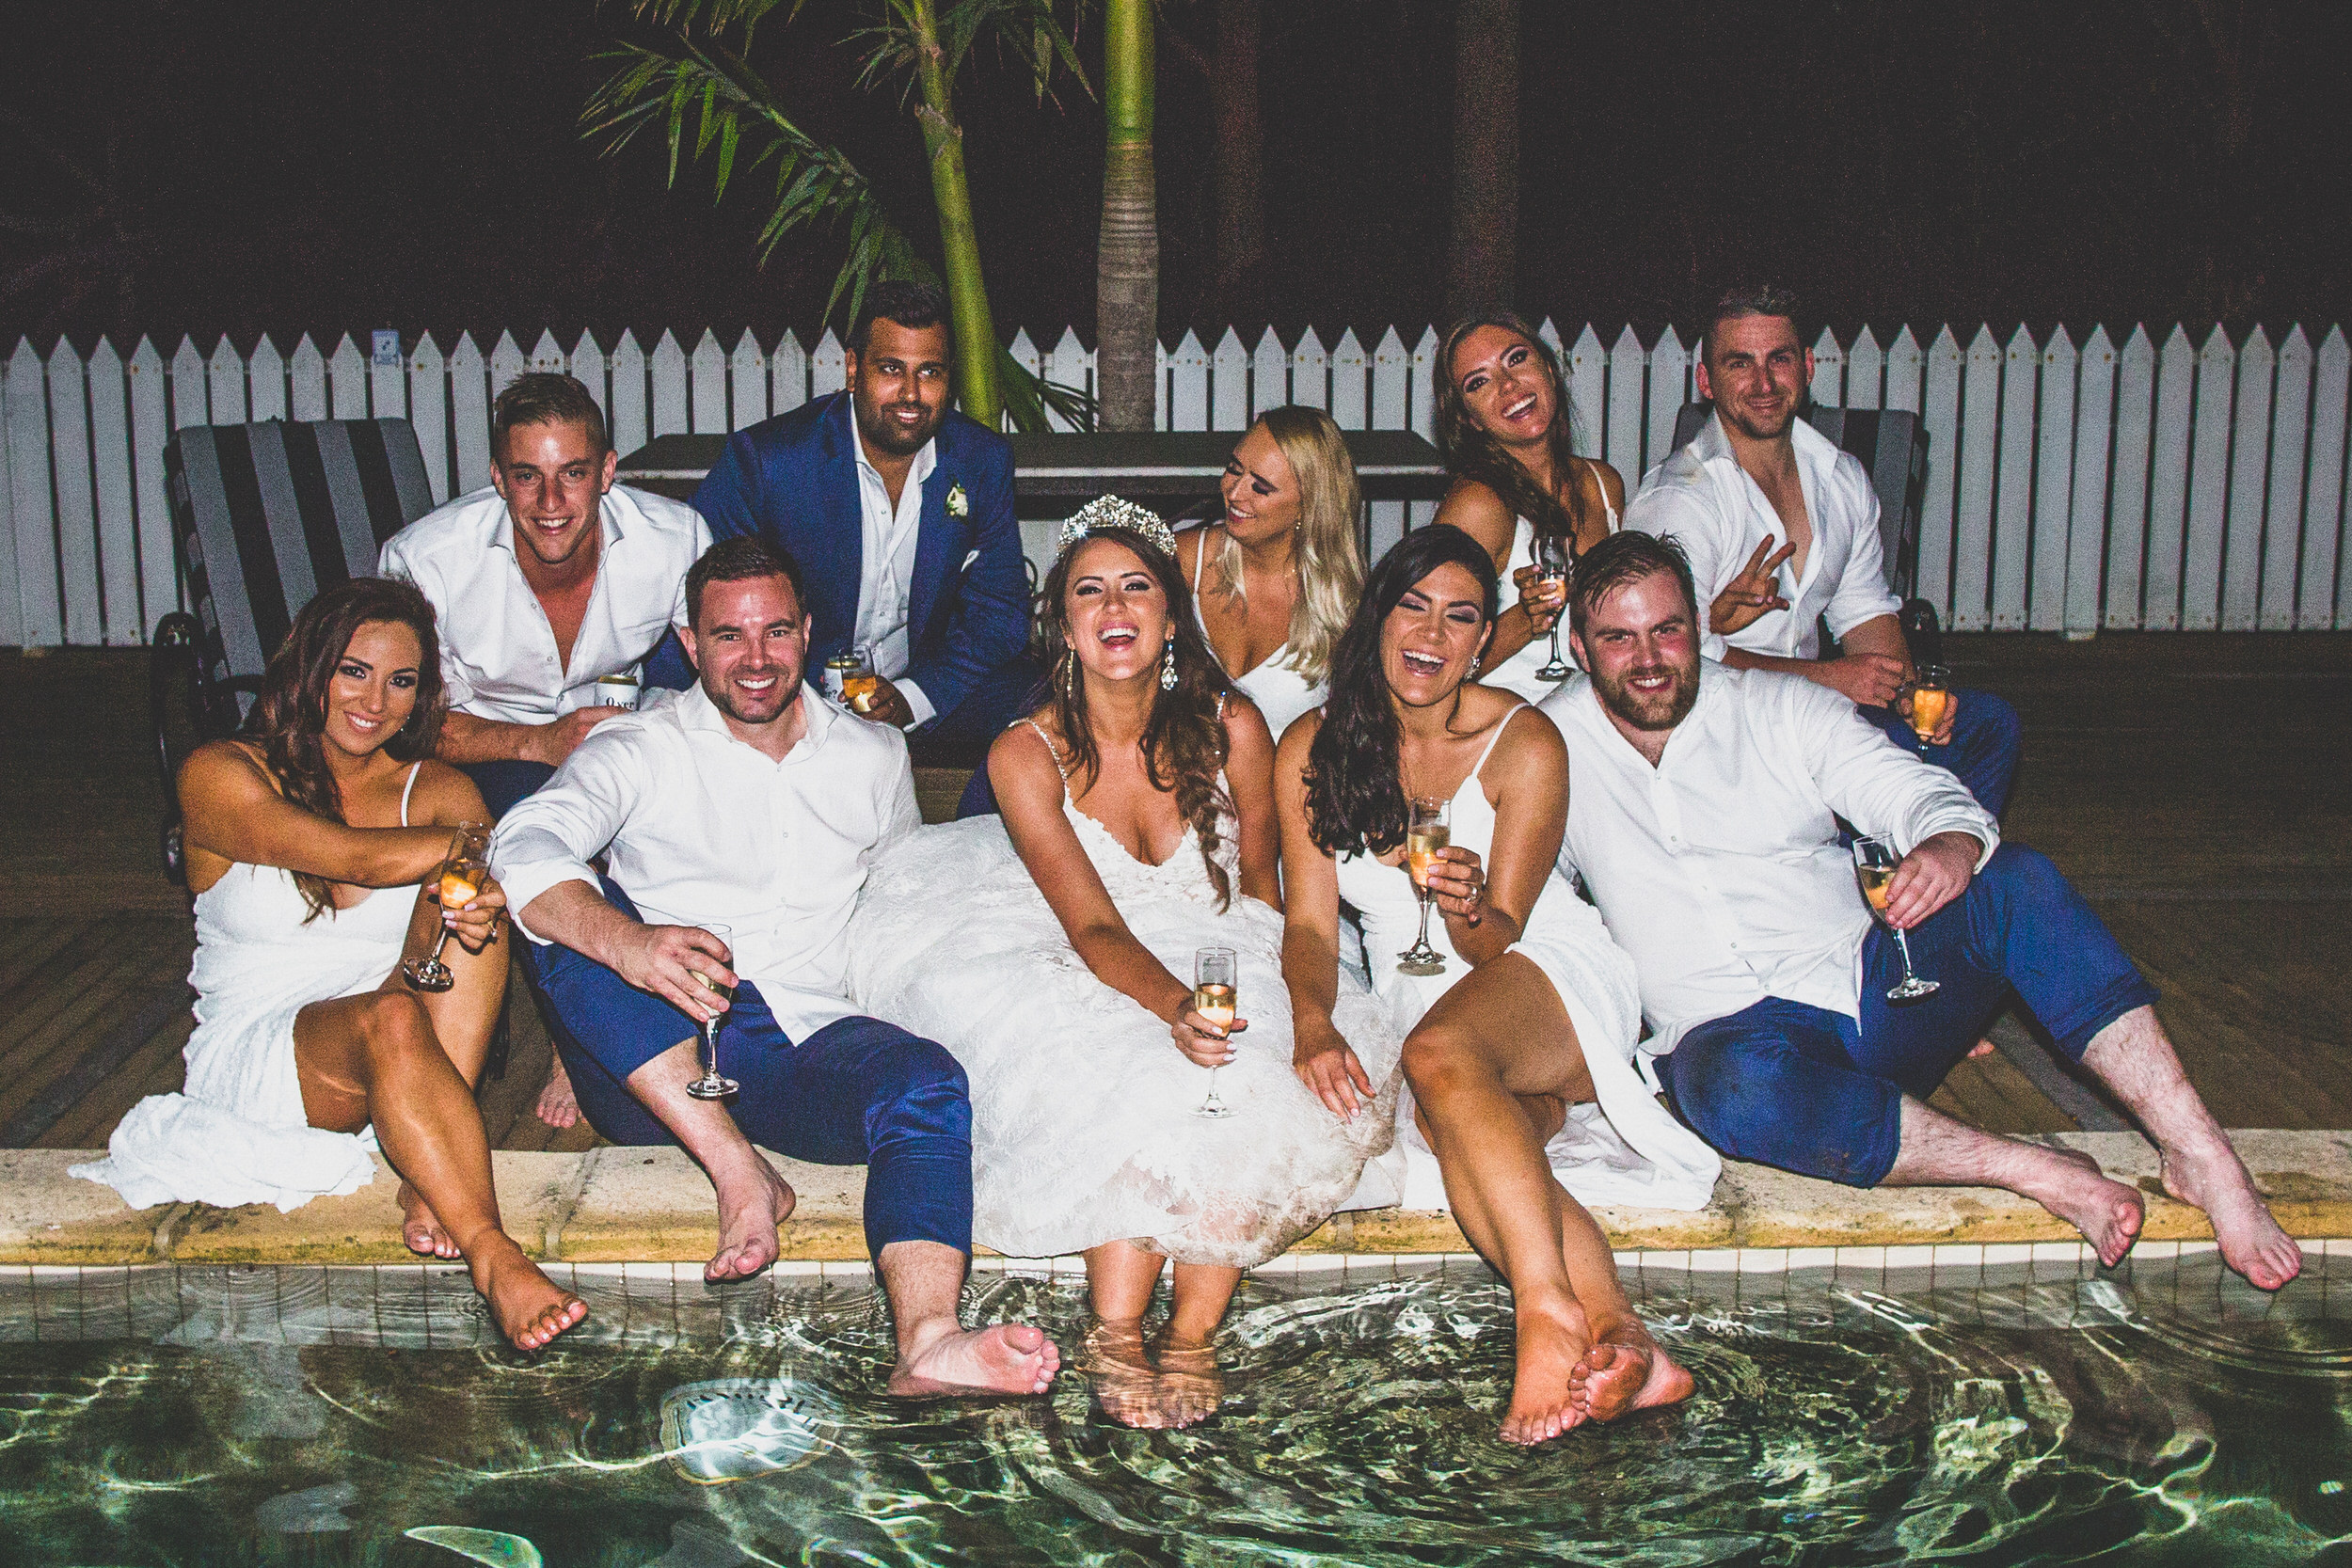 Wedding party Goals - hanging by the pool after a fabulous wedding whilst drinking champagne